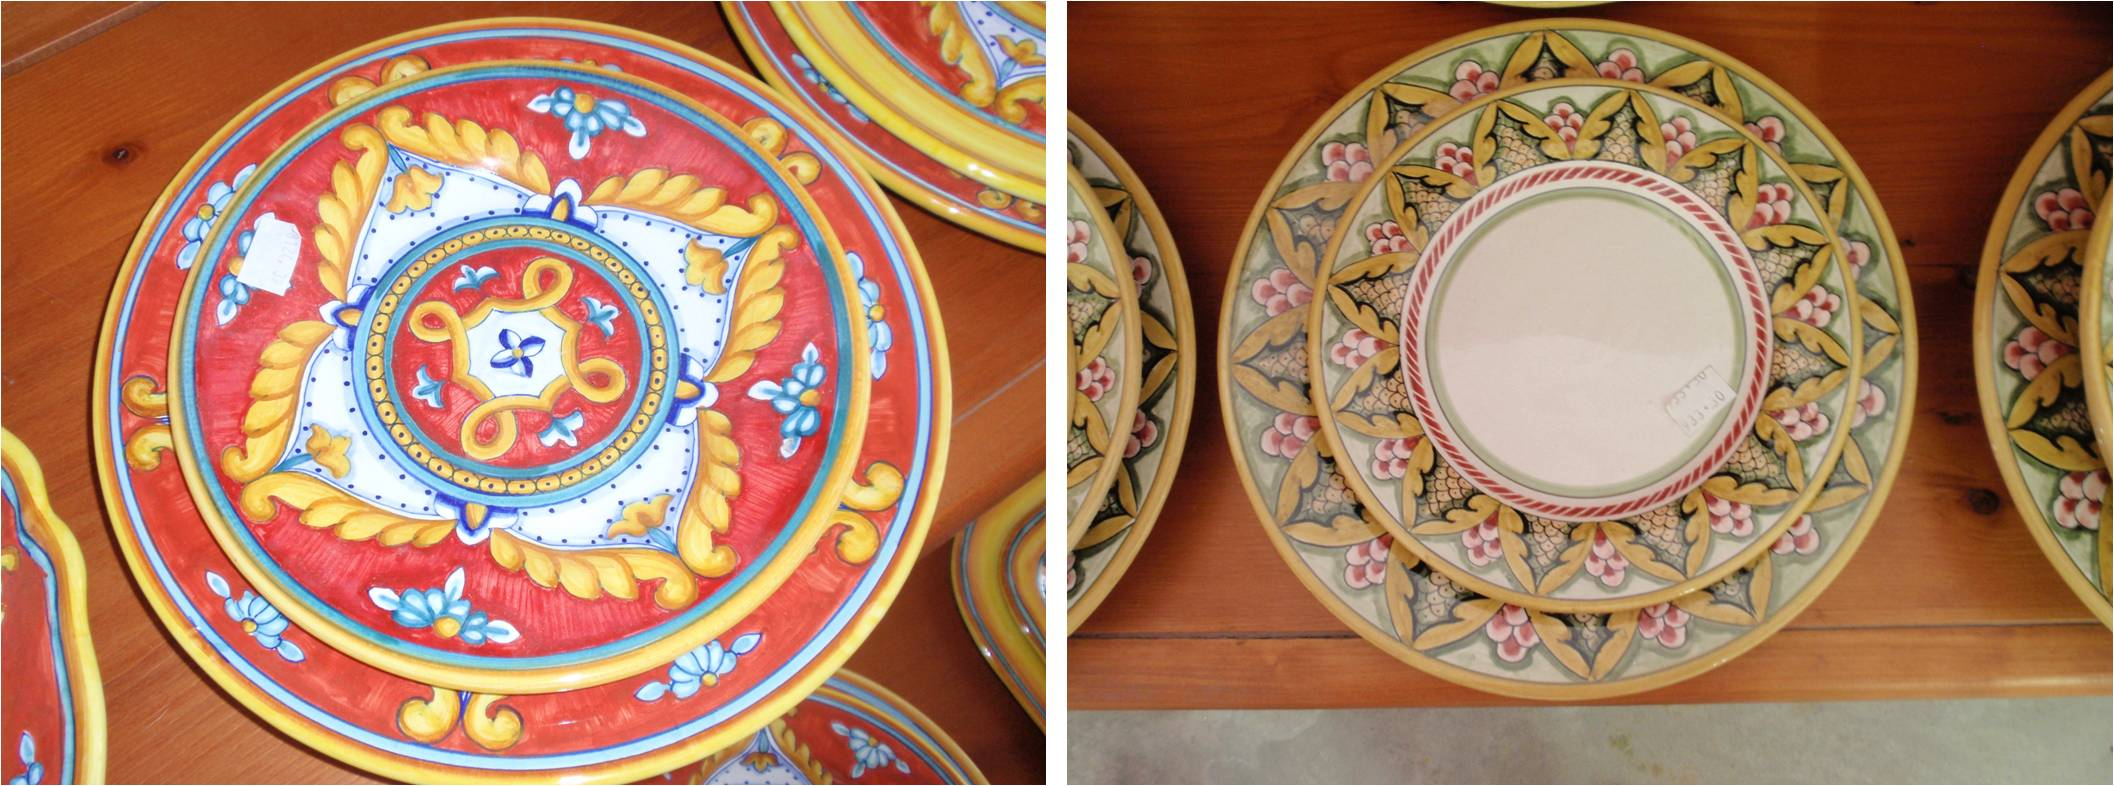 traditional ceramic plates from deruta . & An Indian Summer u0026 Autumnal Eating in the Heart of Italy | Laissez Fare